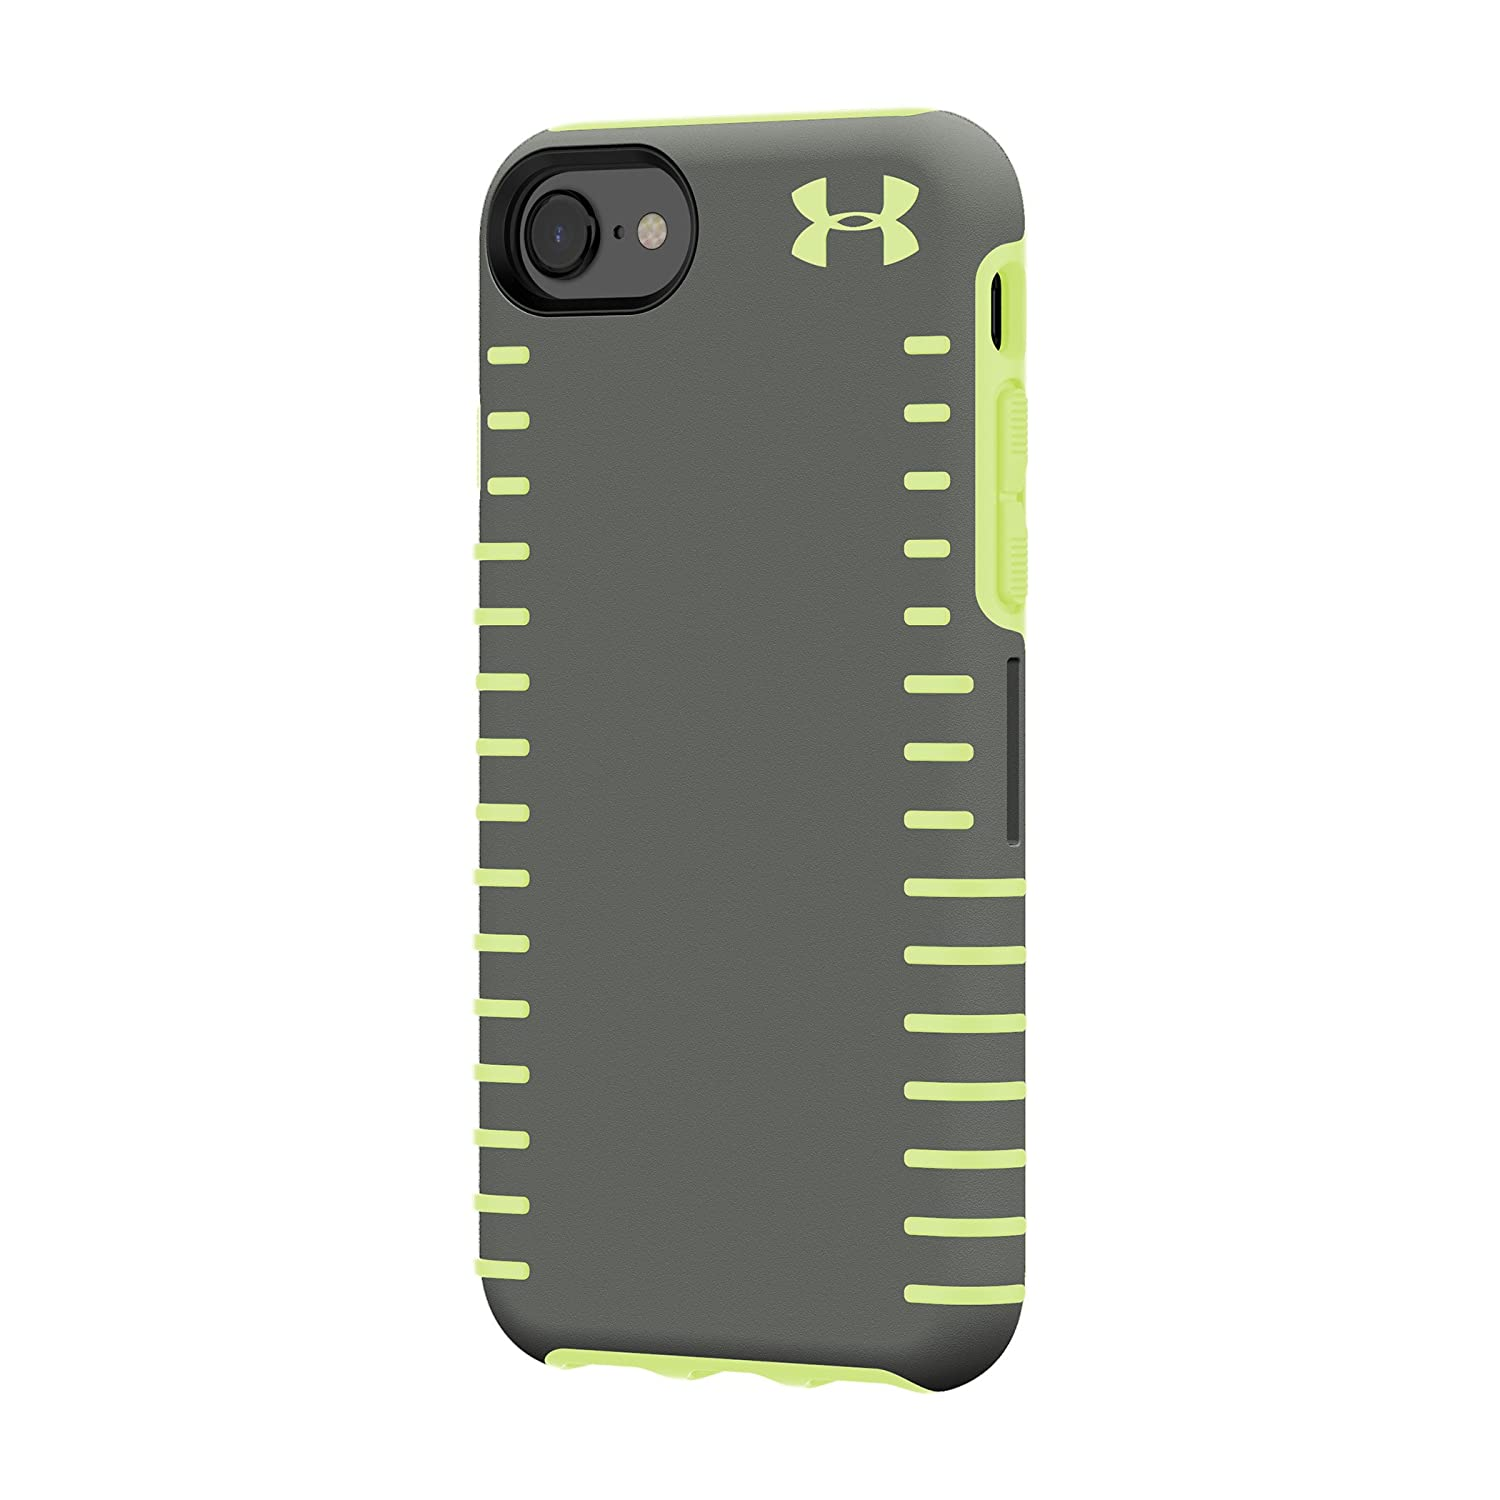 timeless design 8f29e a5f5b Under Armour UA Protect Grip Case for iPhone 8, iPhone 7, iPhone 6s, iPhone  6 - Graphite/Quirky Lime